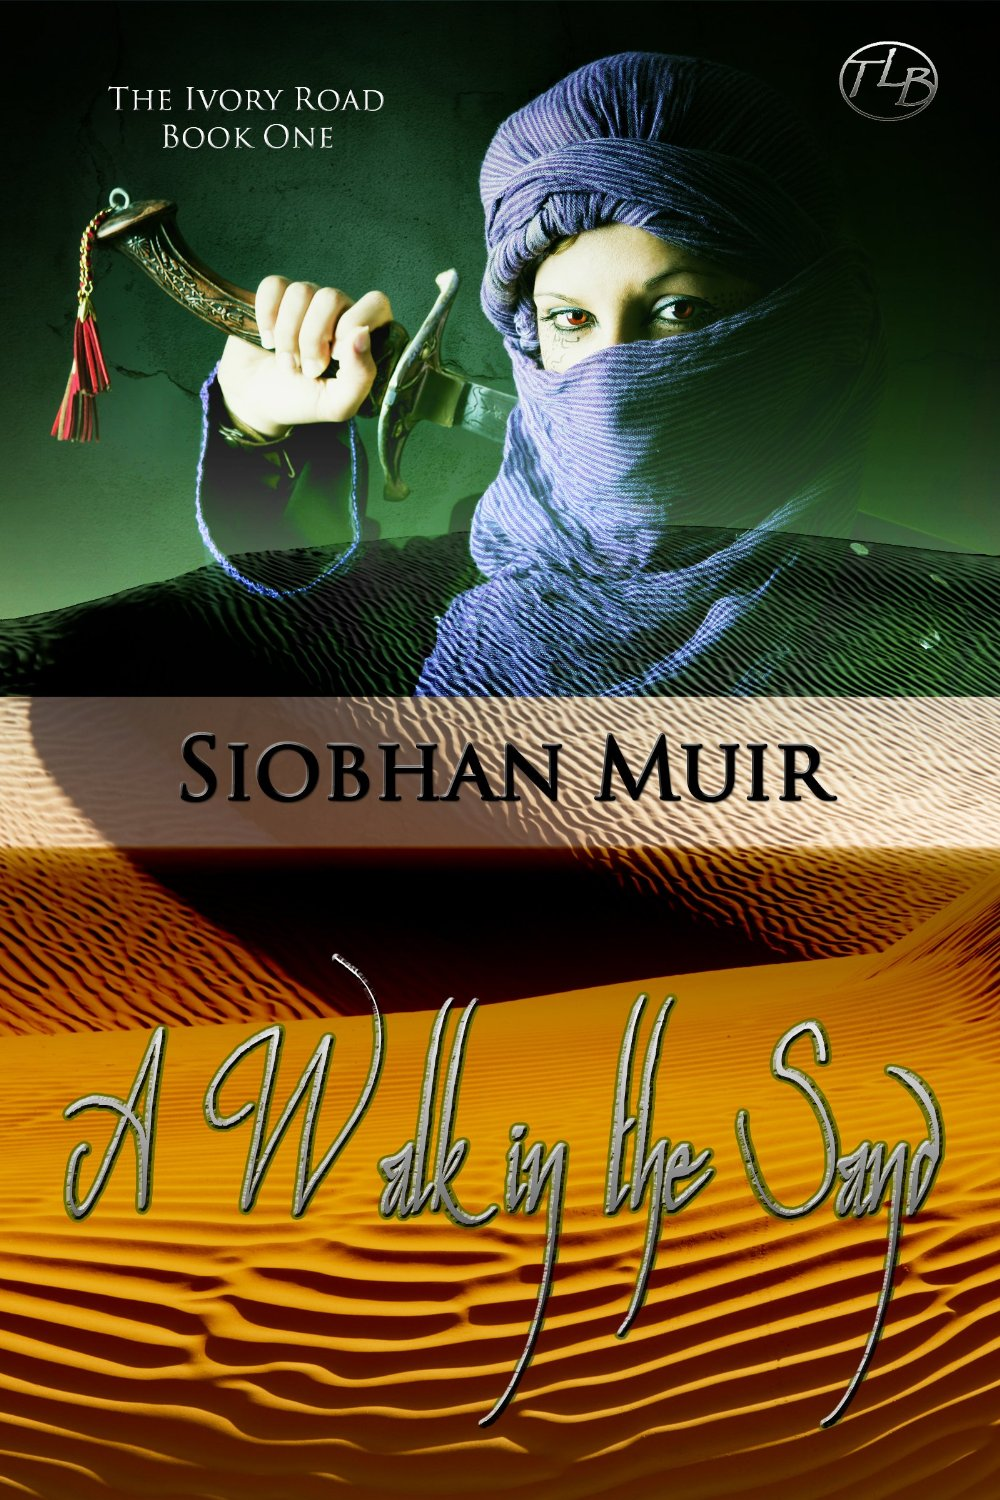 Book review by Wendy Strain on A Walk in the Sand by Siobhan Muir